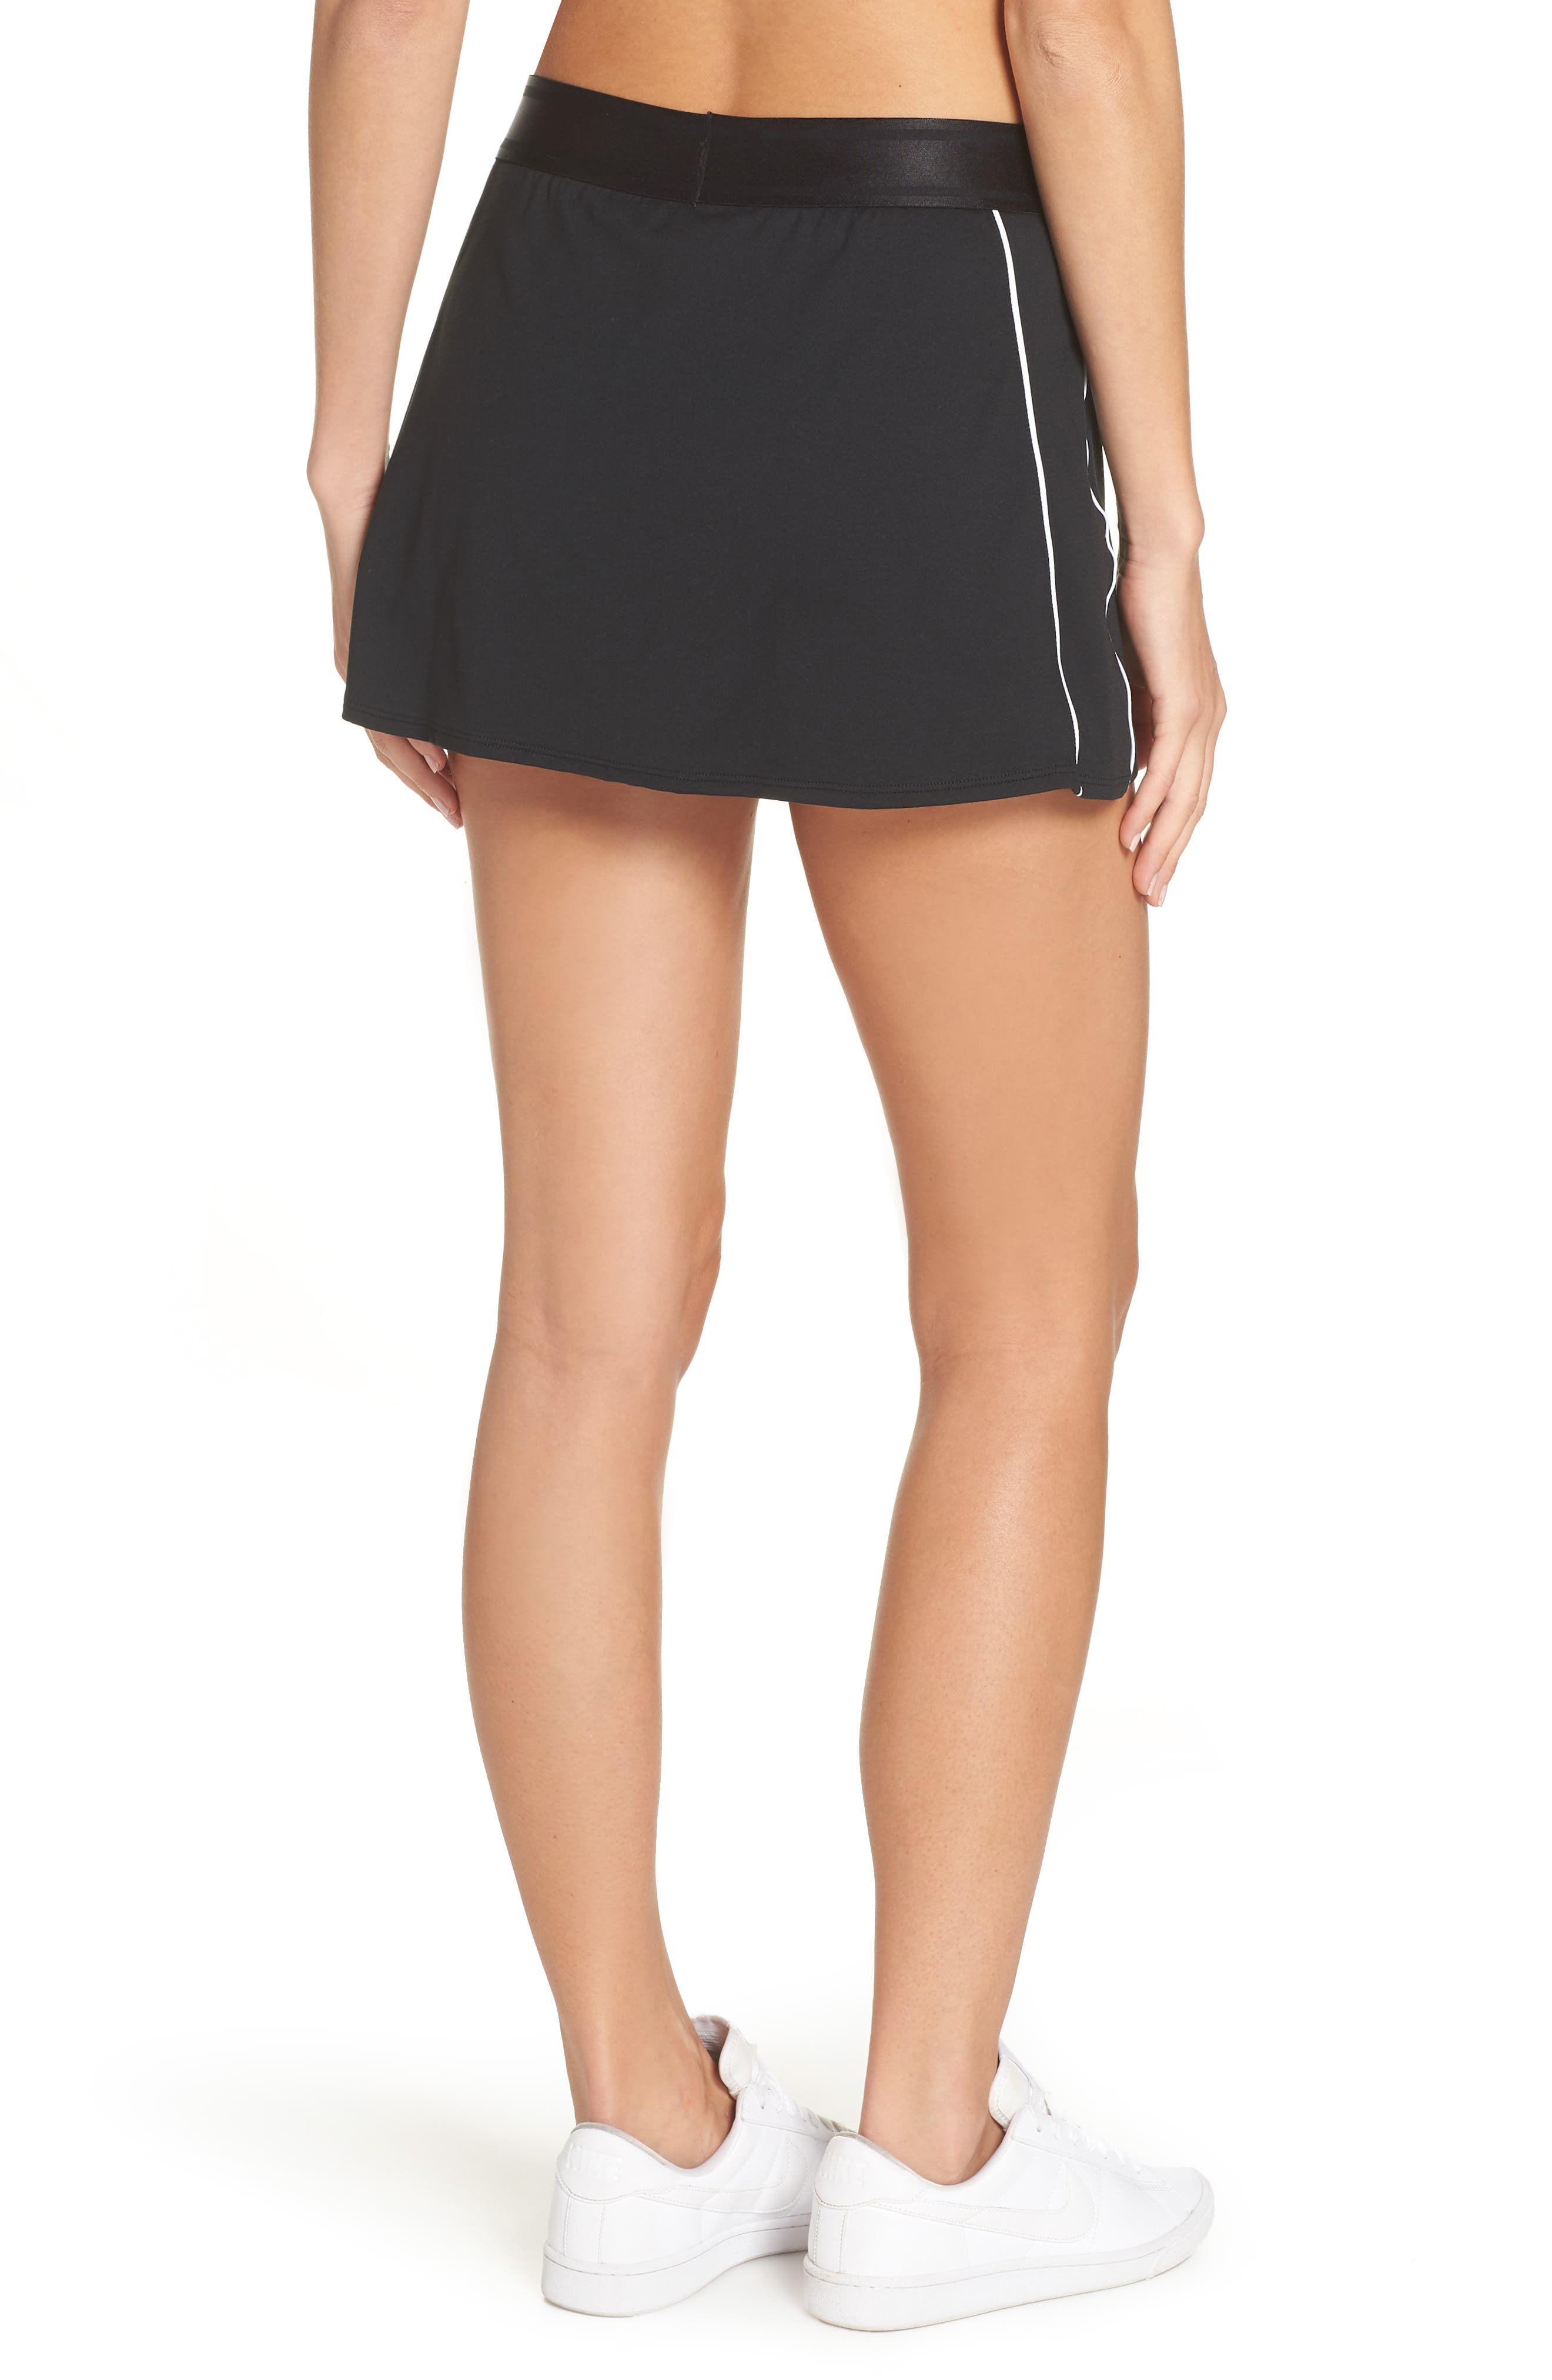 NIKE, Court Dry-FIT Tennis Skirt, Alternate thumbnail 2, color, BLACK/ WHITE/ WHITE/ BLACK